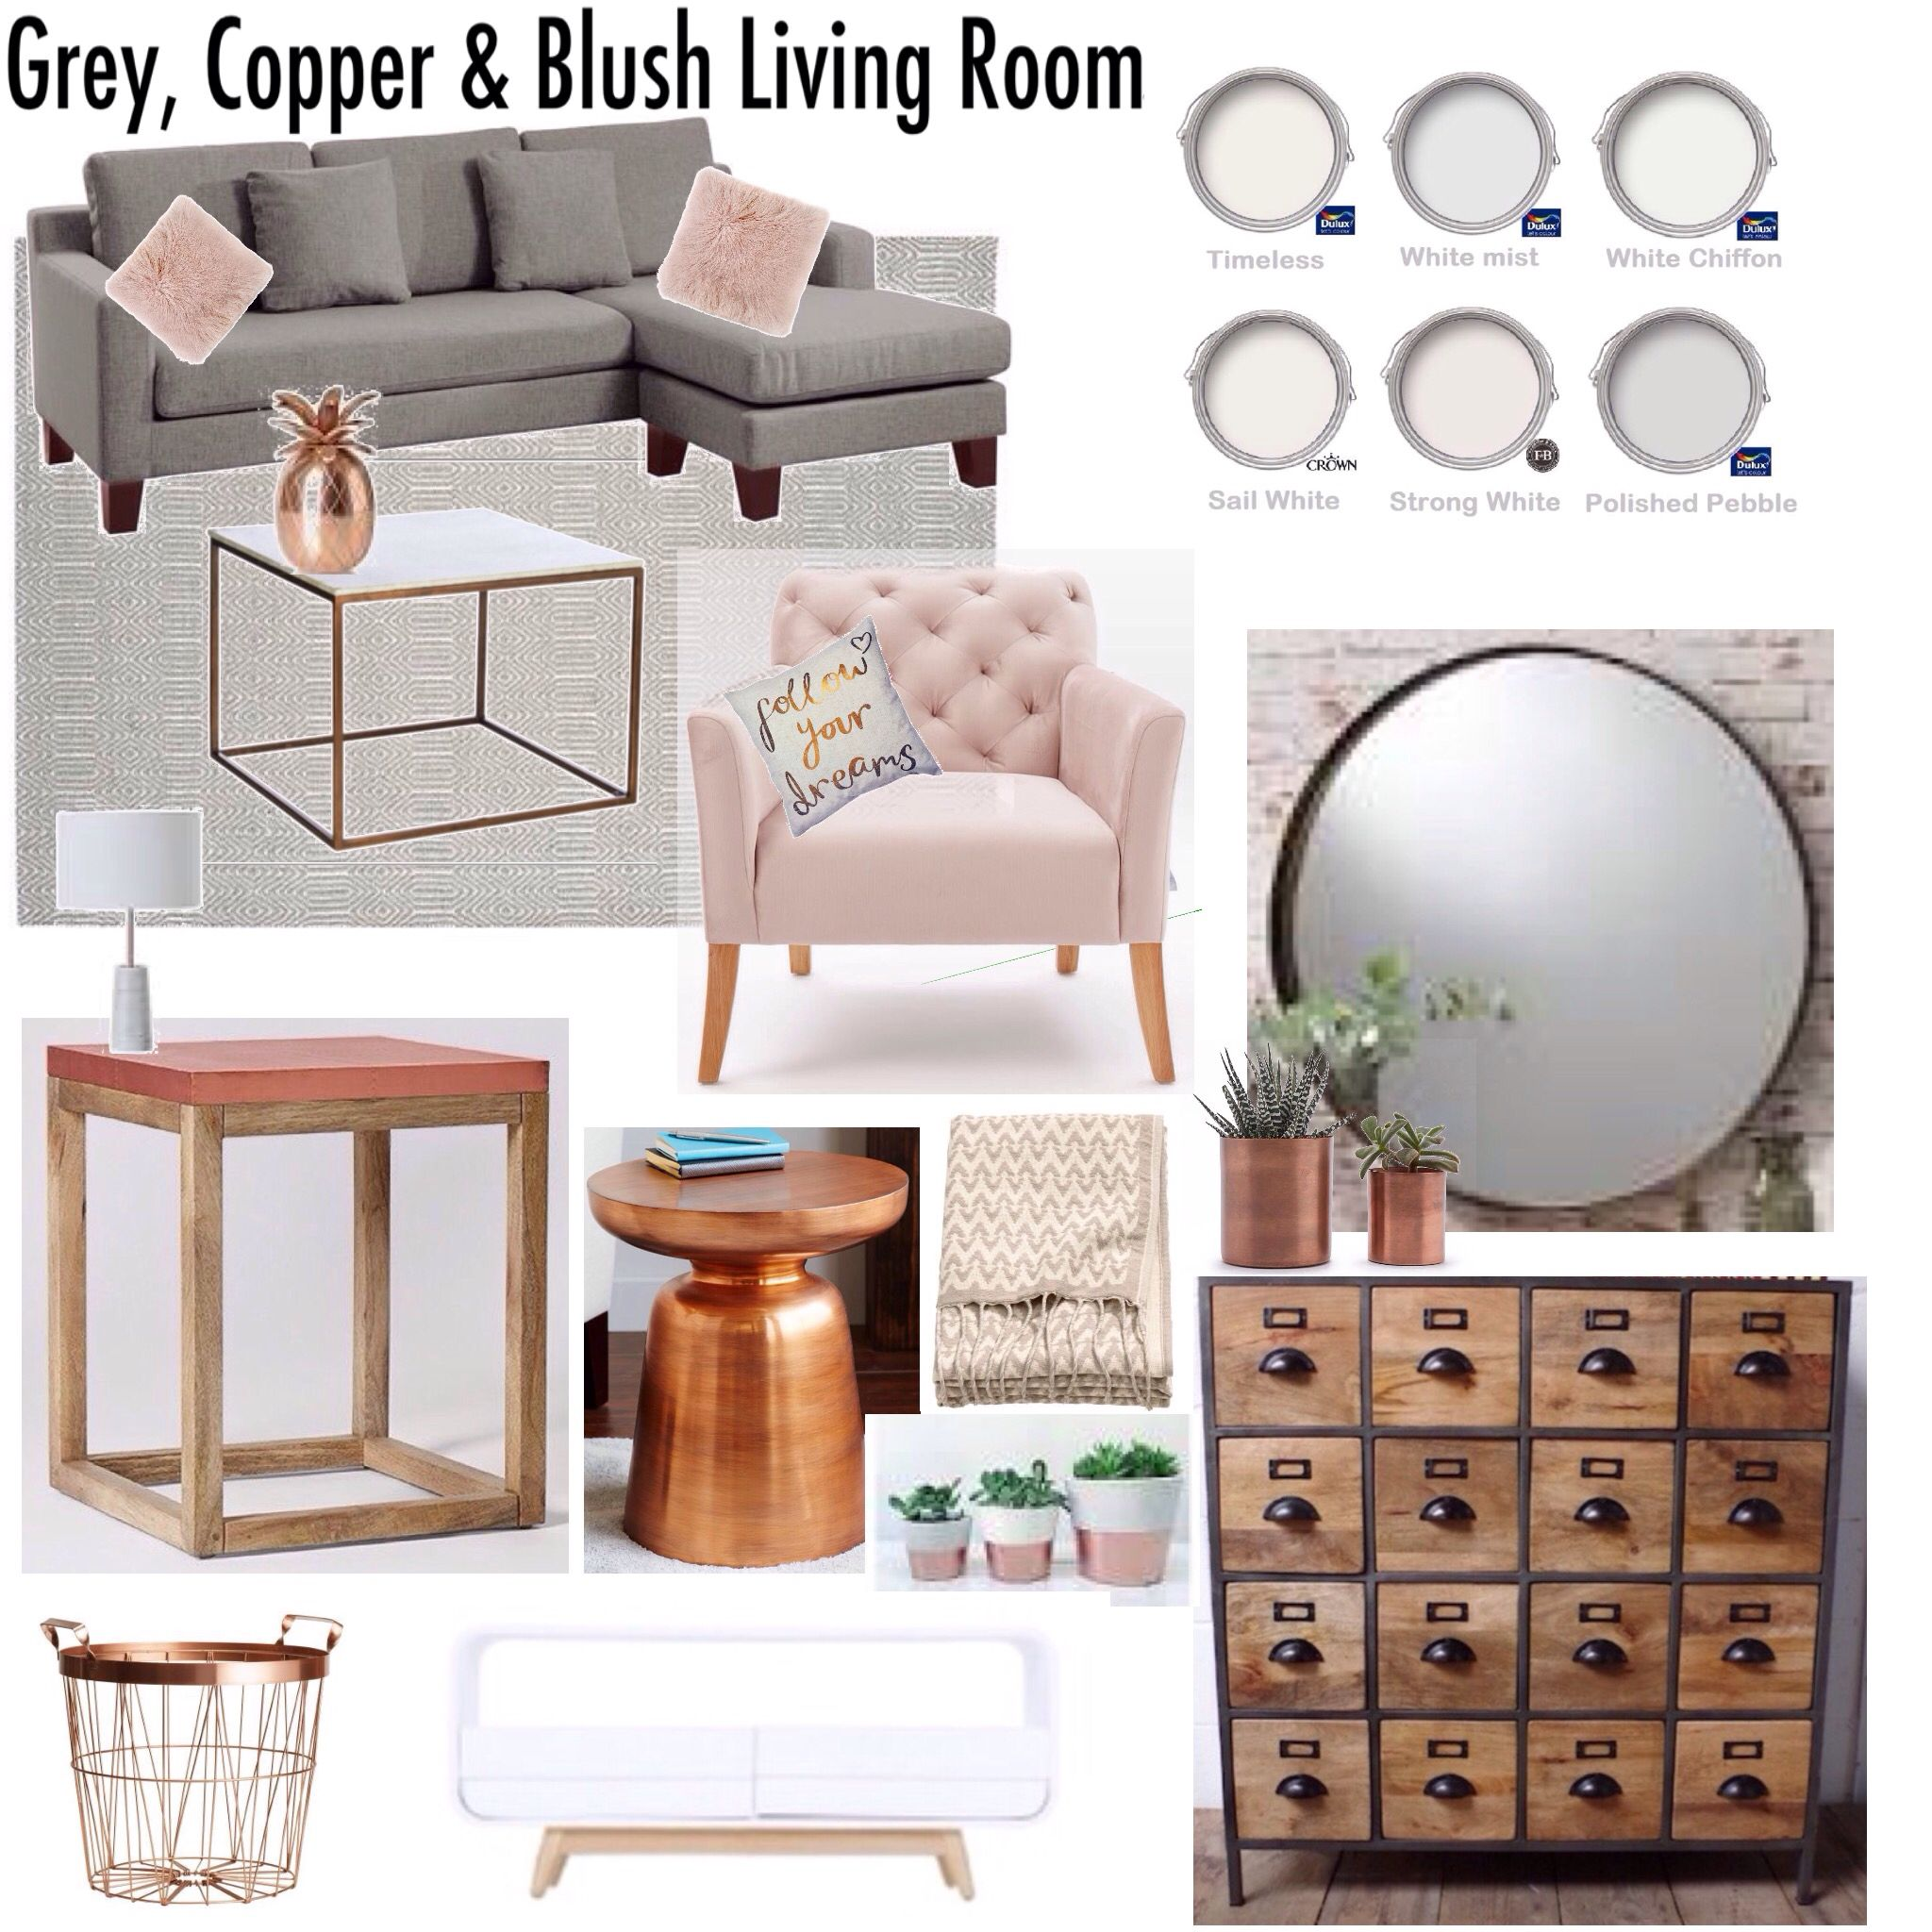 Gray Copper Blush Living Room Decor Mood Board